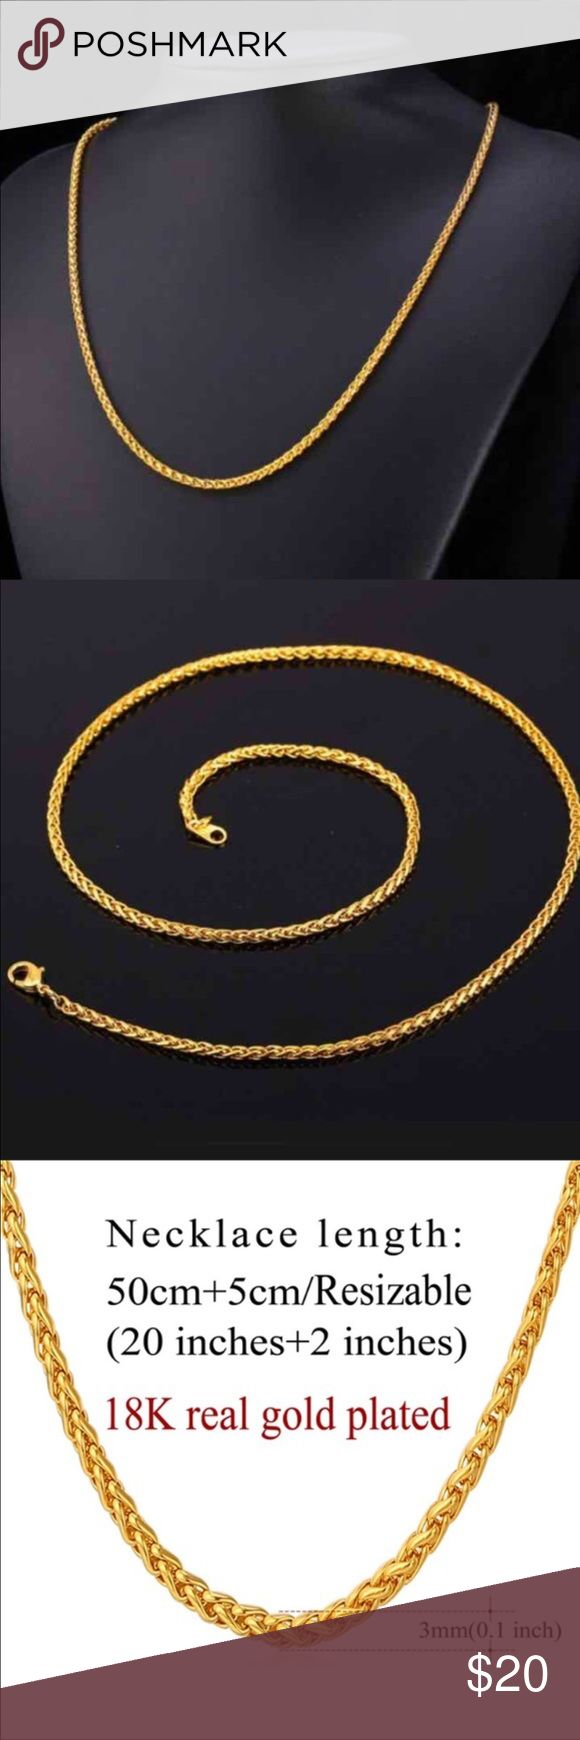 New 18k Gold Chain For Men Or Women Brand New Real 18k Gold Plated Chain Fit